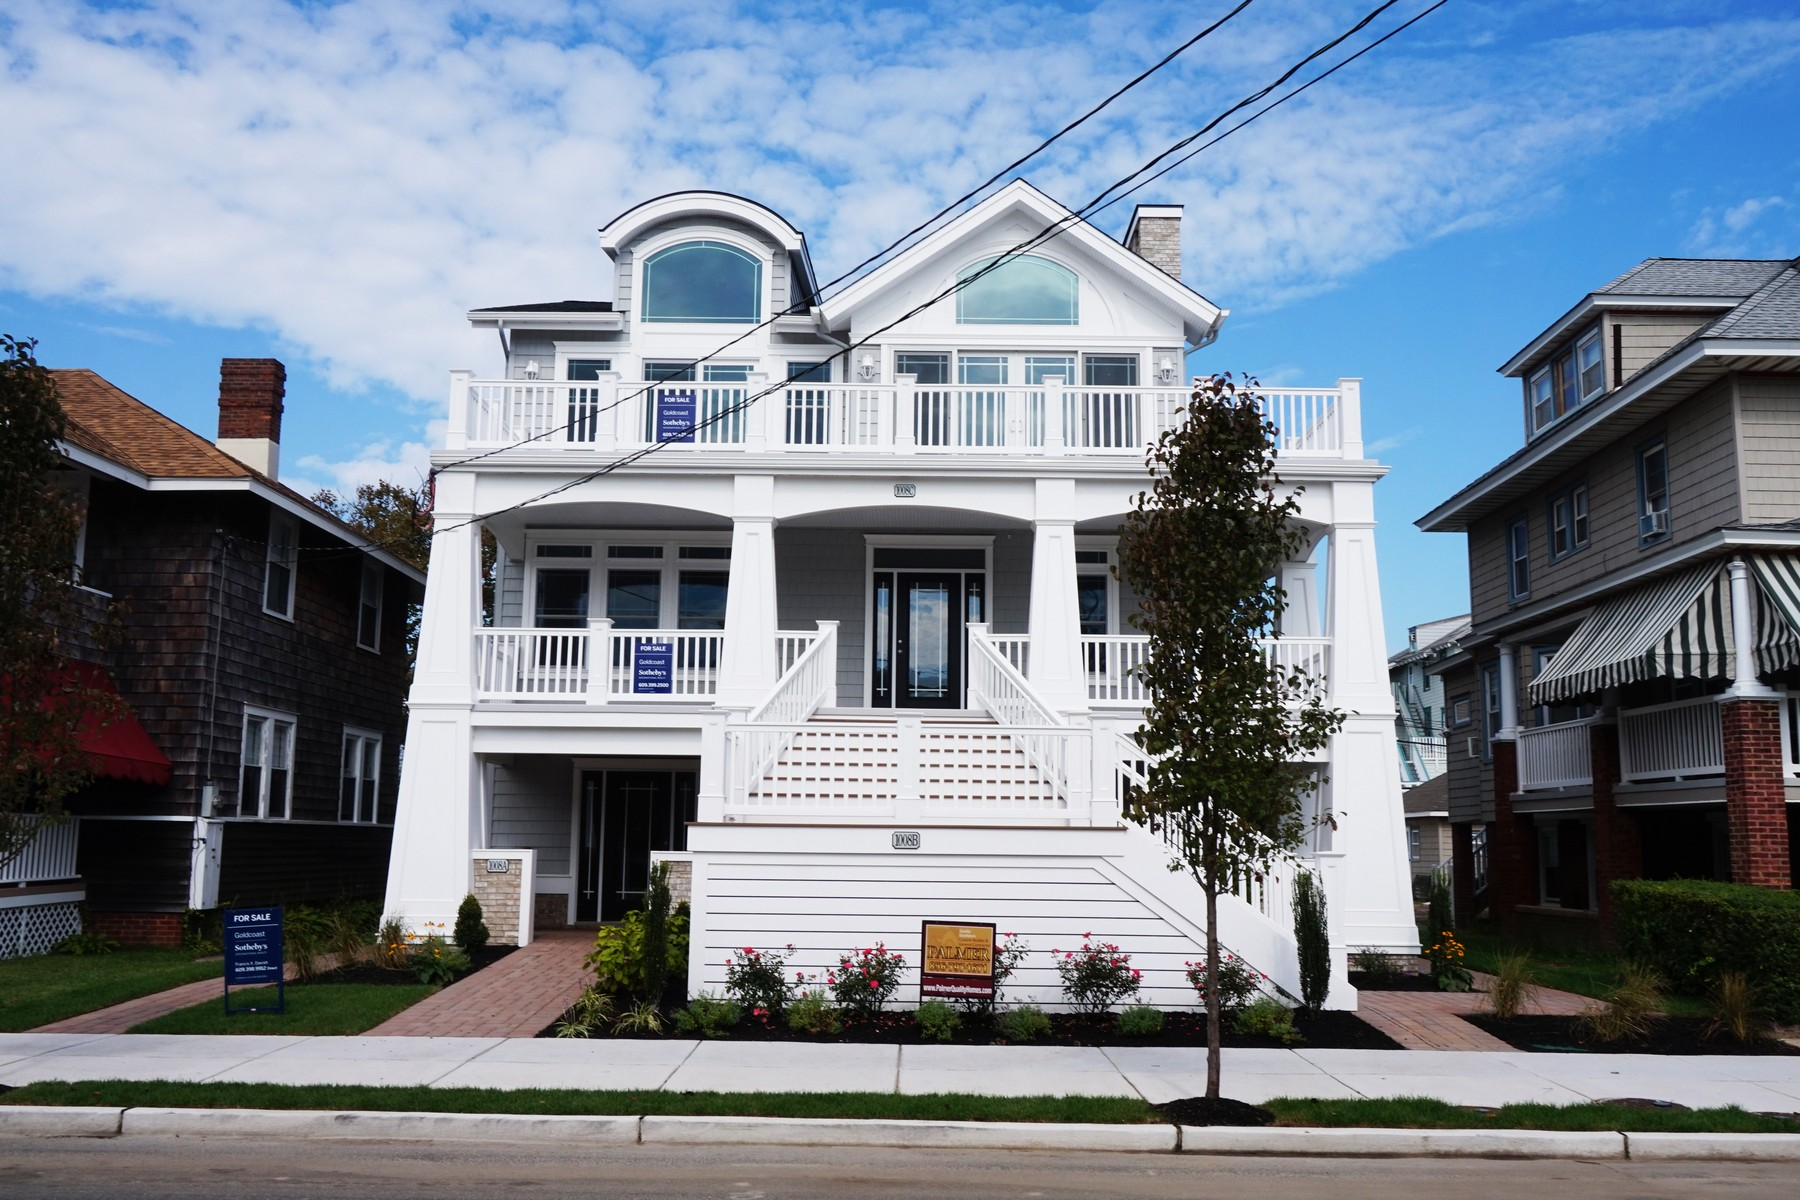 Condominium for Sale at New Construction 1008 Ocean Avenue Unit A Ocean City, New Jersey 08226 United States